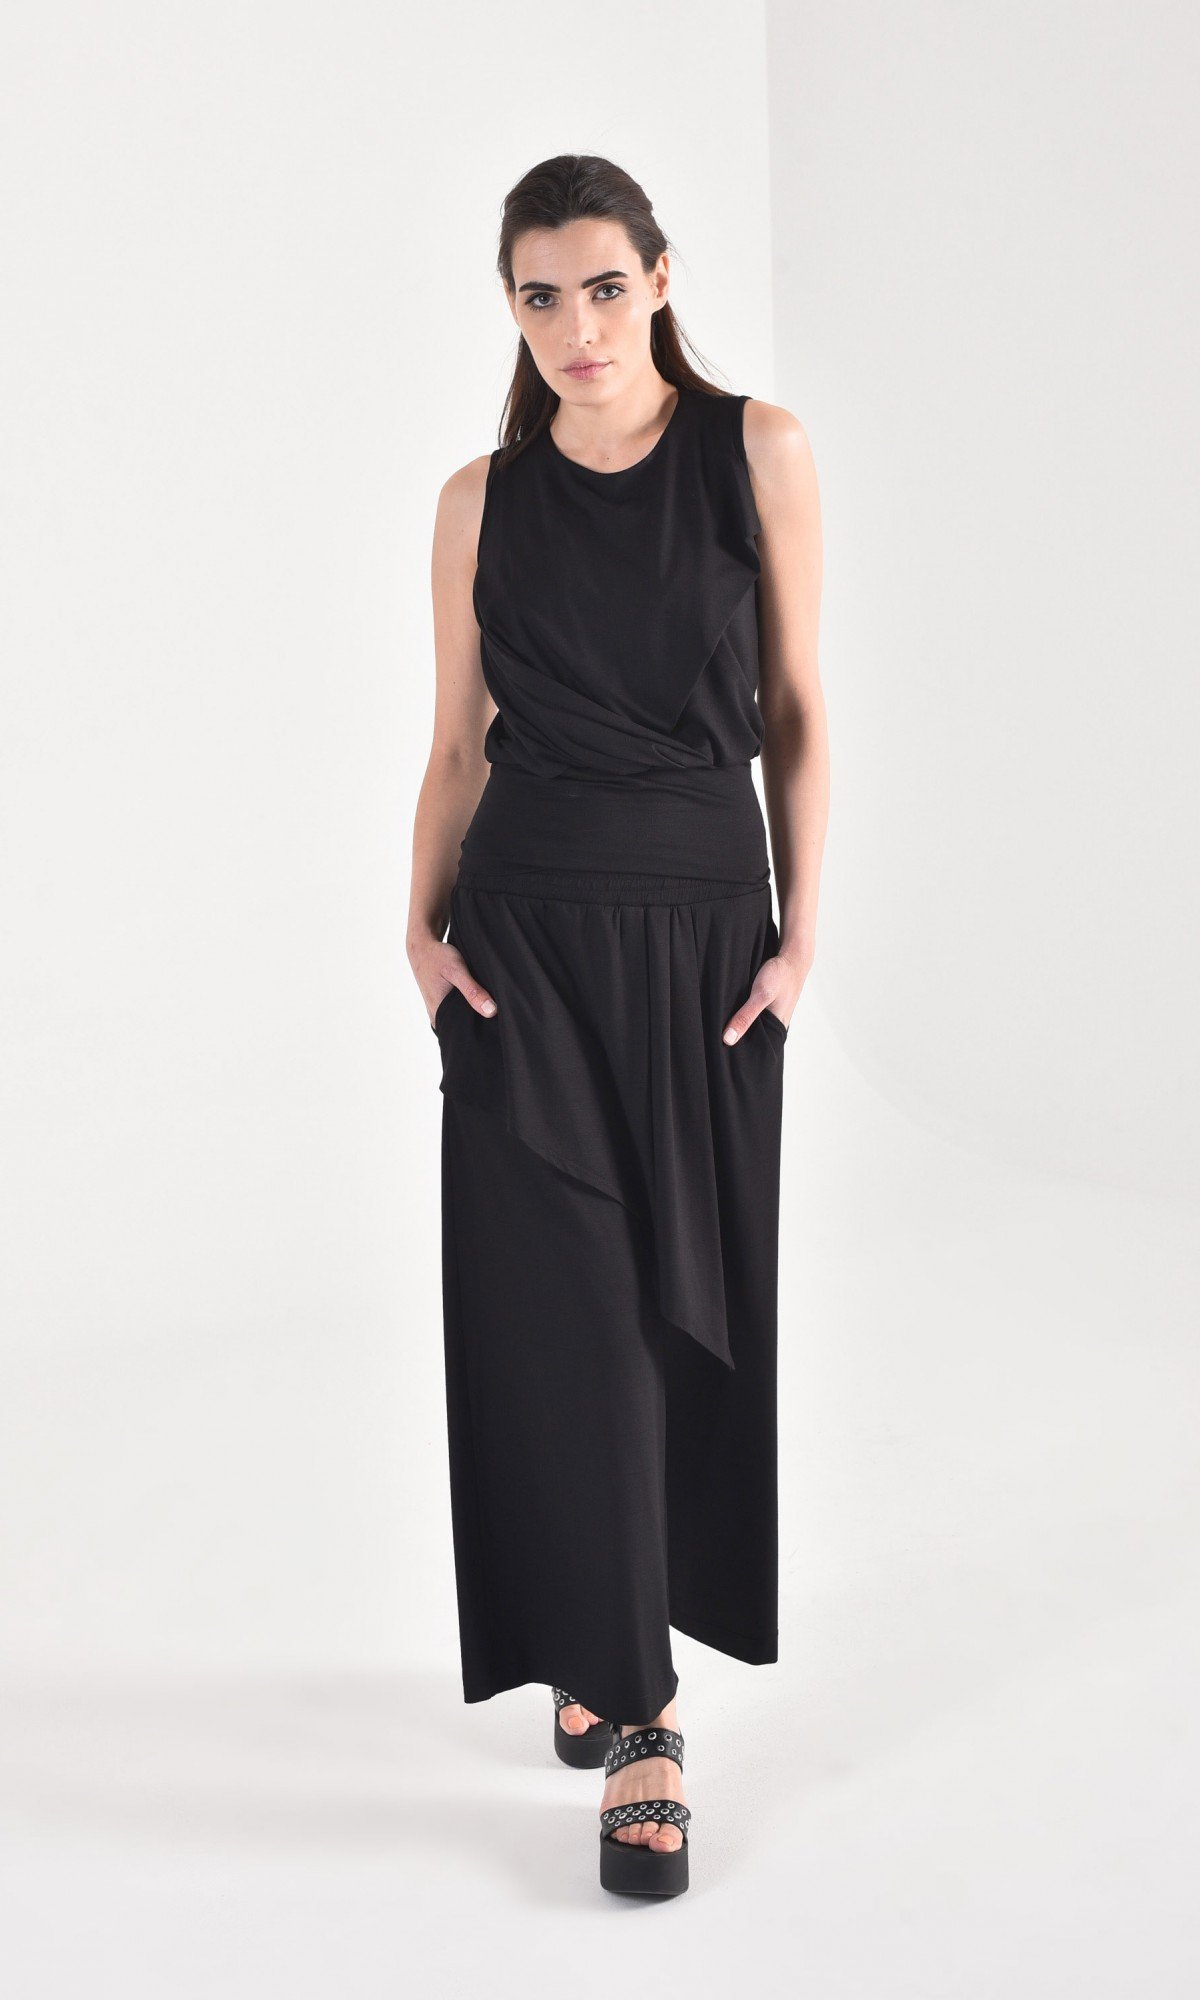 Elegant sleeveless top with elastic waistband A90463